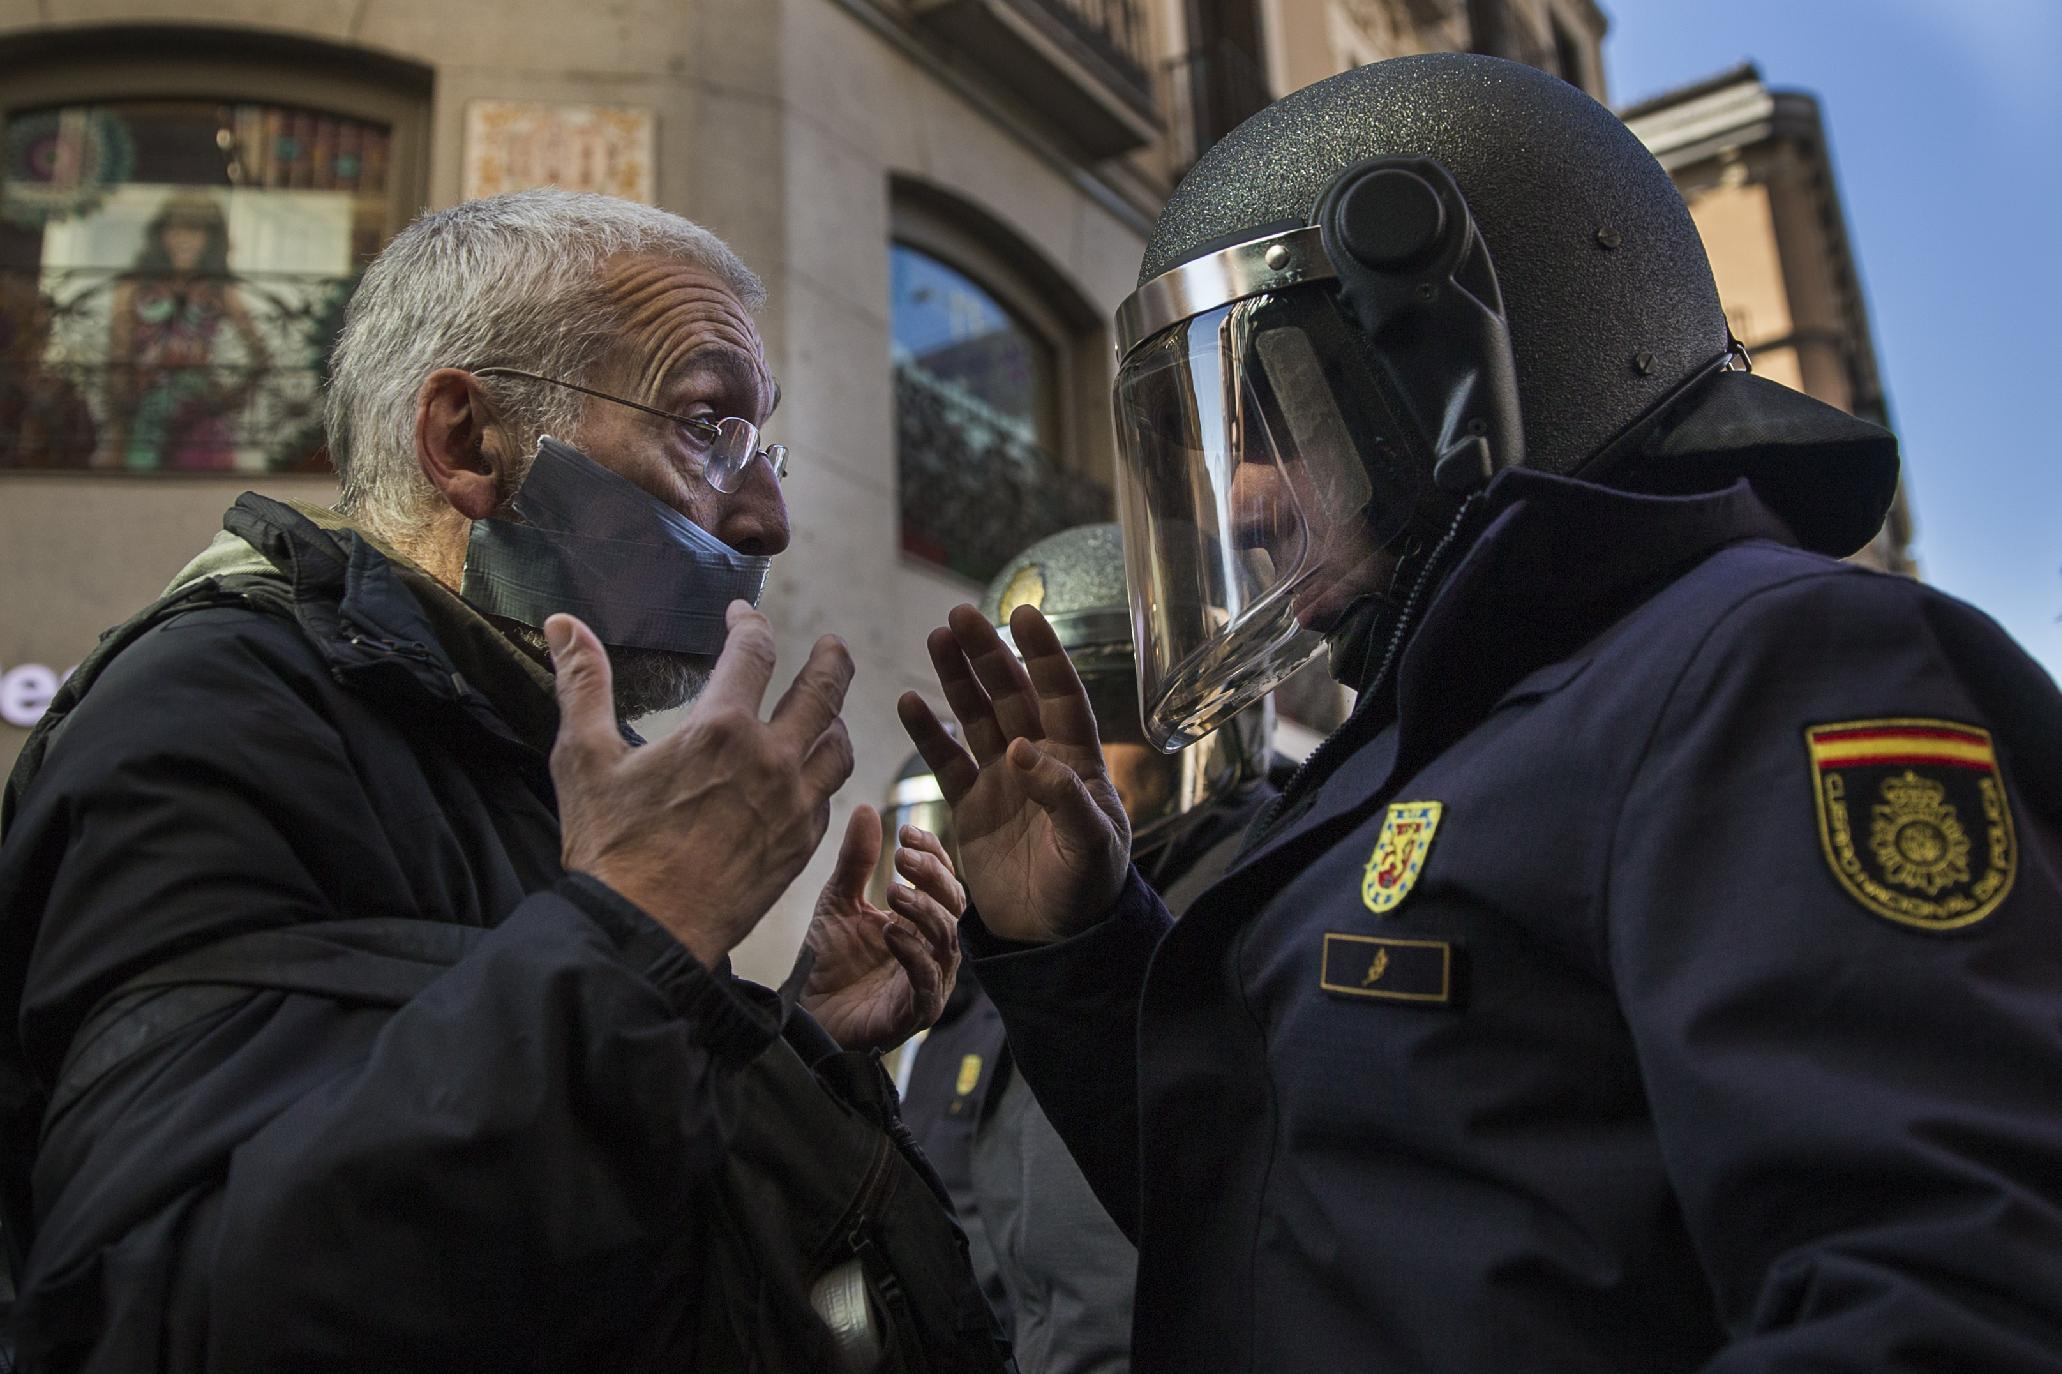 Spaniards protest their nation's proposed security law